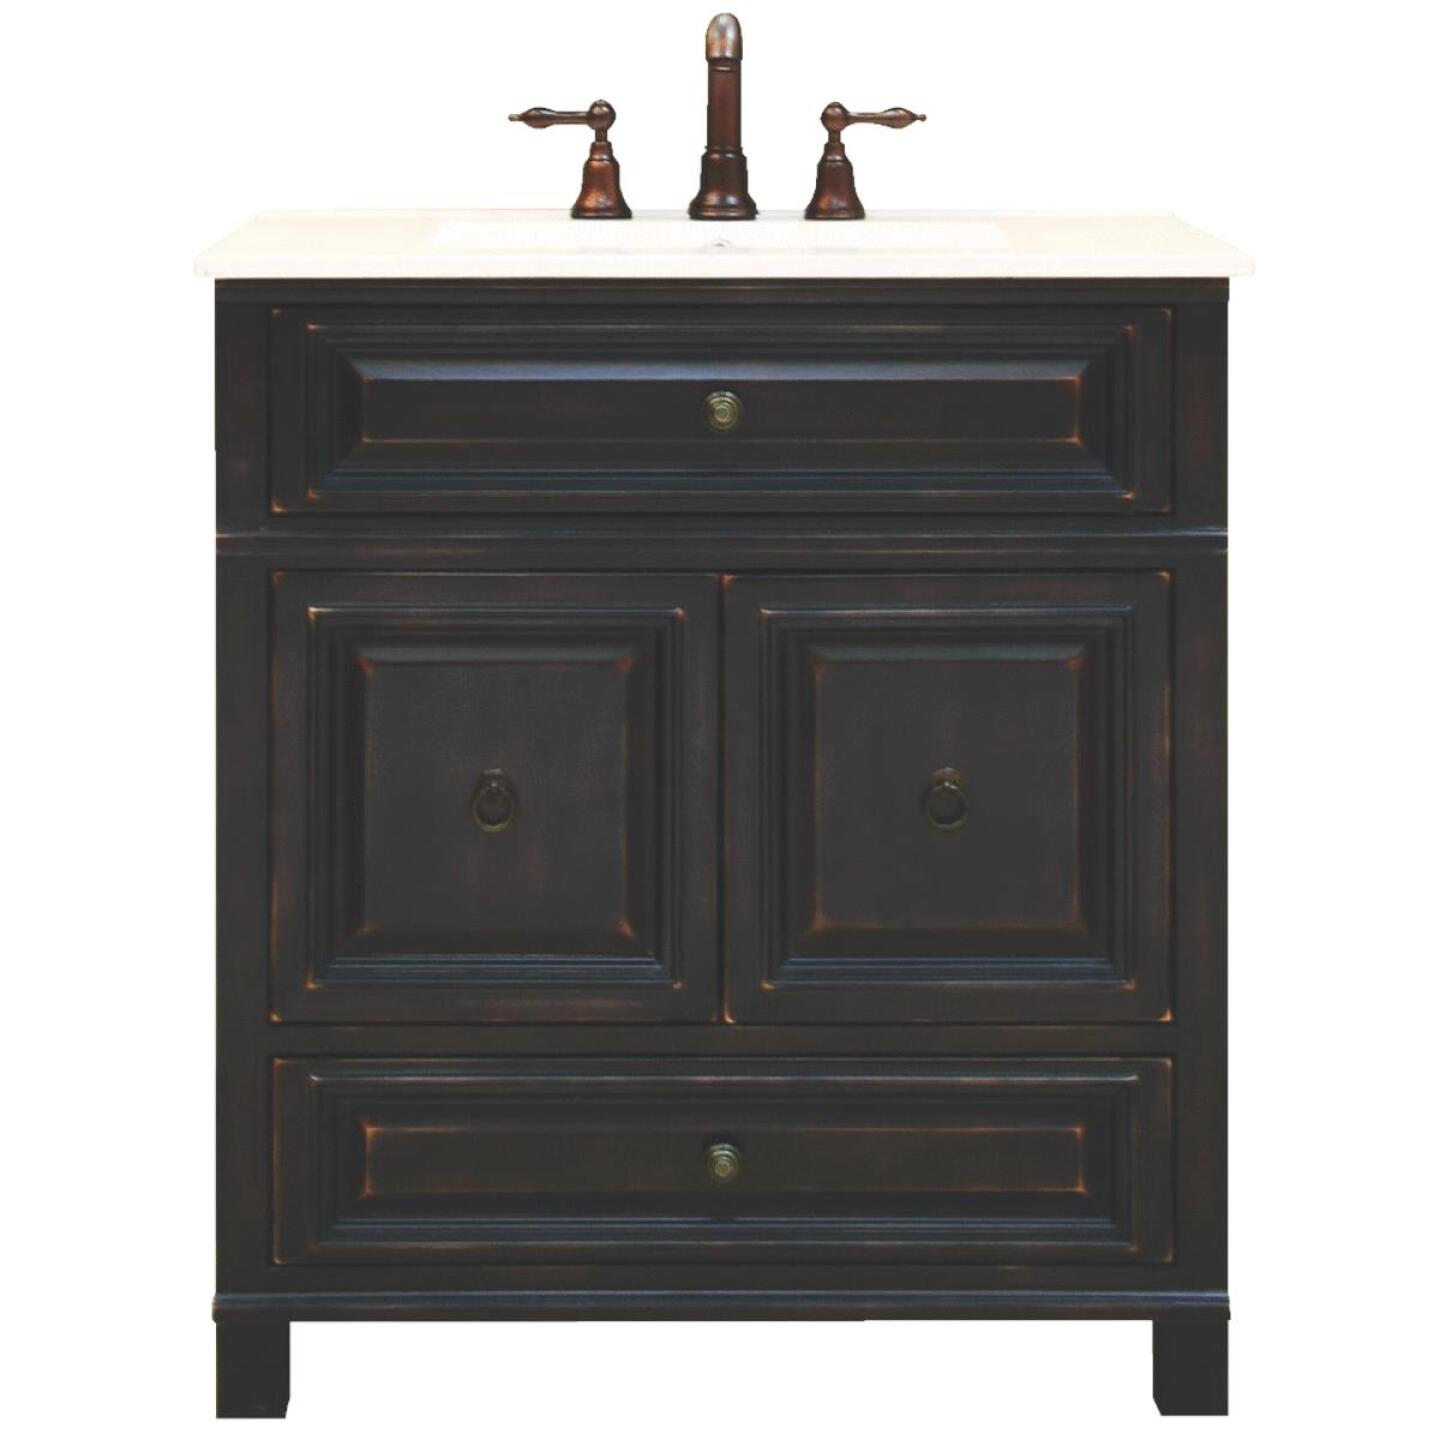 Sunny Wood Barton Hill Black Onyx 30 In. W x 34 In. H x 21 In. D Vanity Base, 2 Door/1 Drawer Image 261